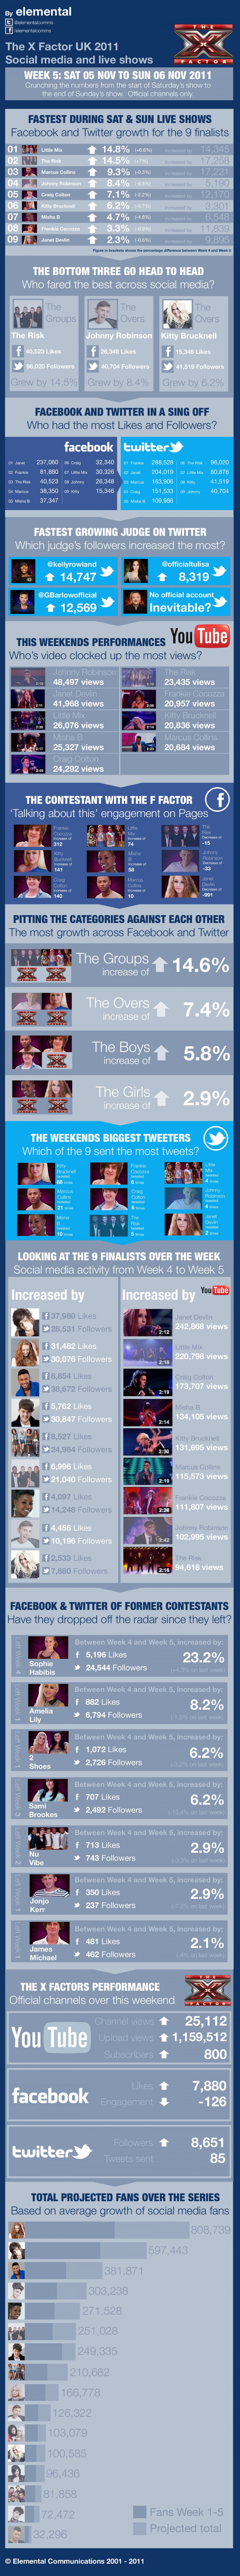 X Factor social media infographic for Week 5 Infographic